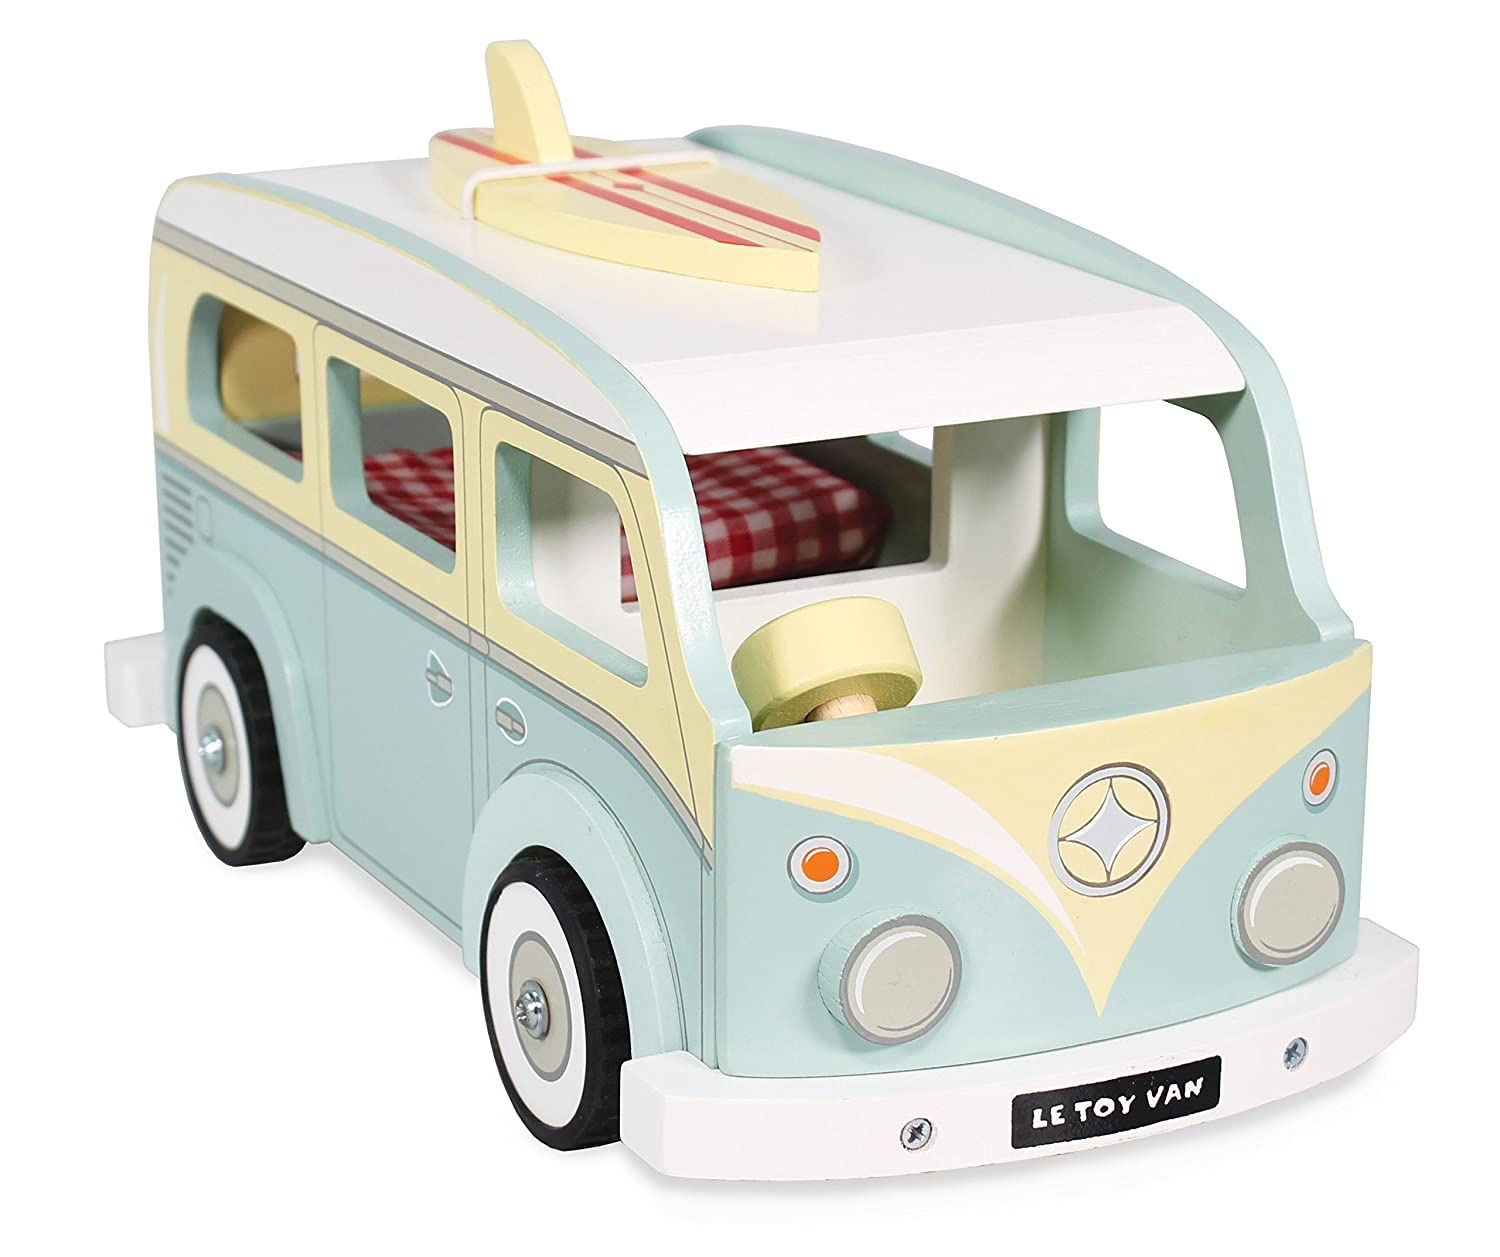 Le Toy Van Daisylane Holiday Campervan Set Premium Wooden Toys for Kids Ages 3 Years /& Up Multi